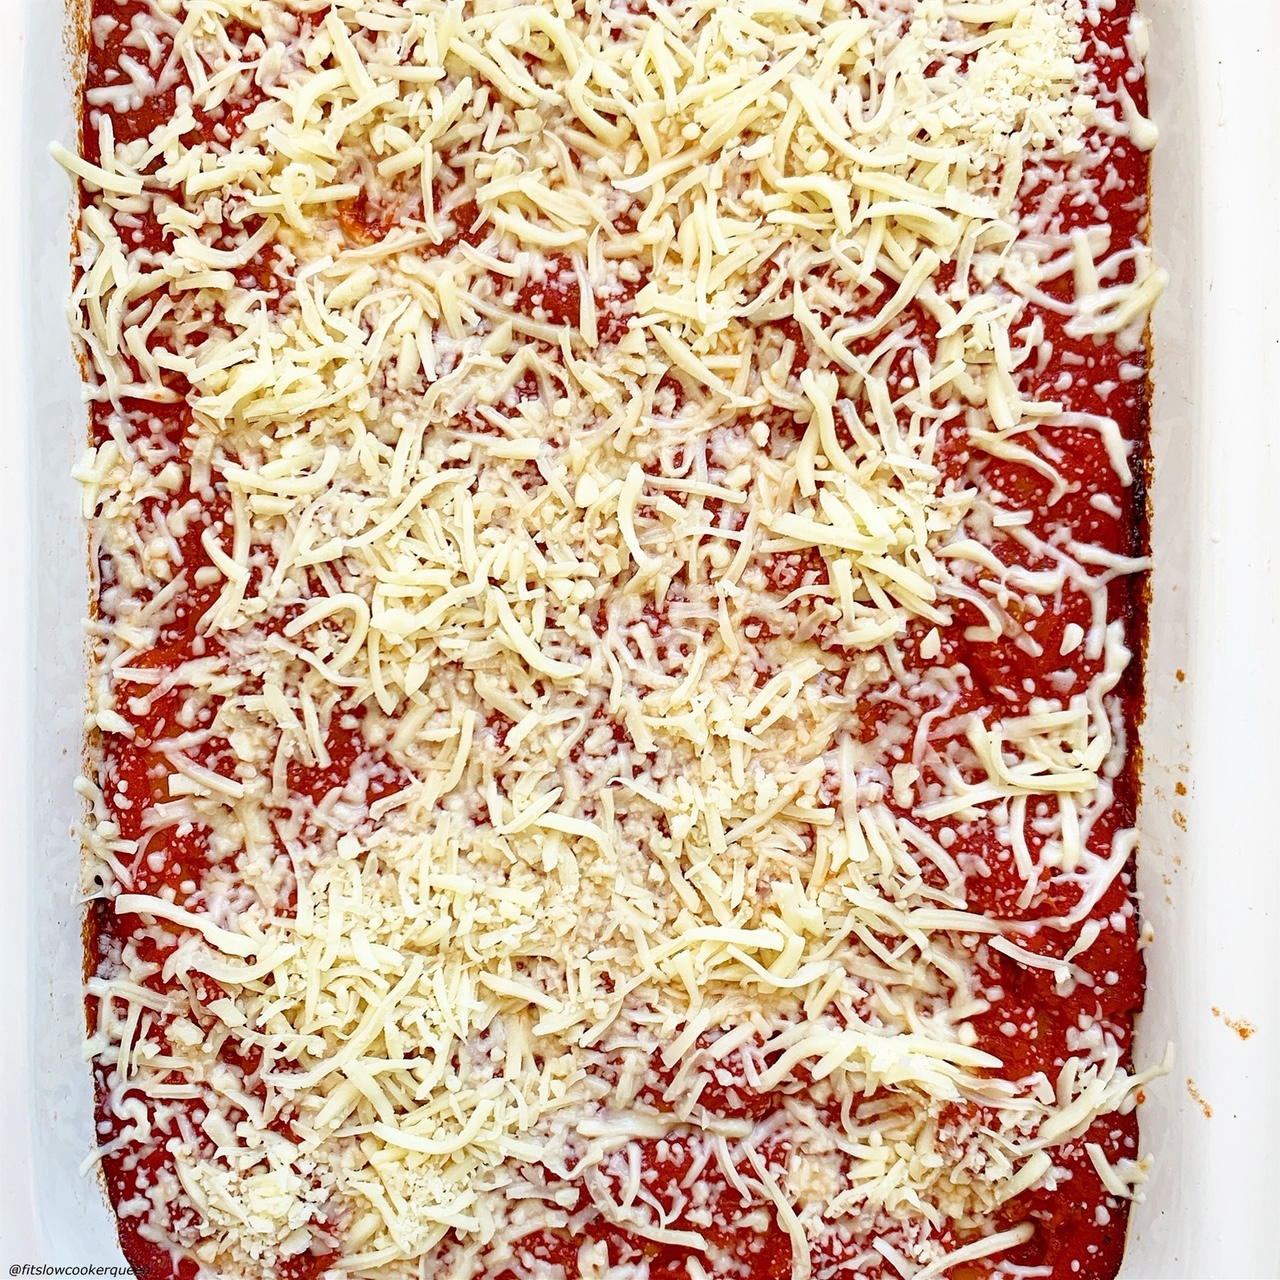 cooked manicotti with cheese added on top to cook some more for slow cooker or instant pot stuffed manicotti